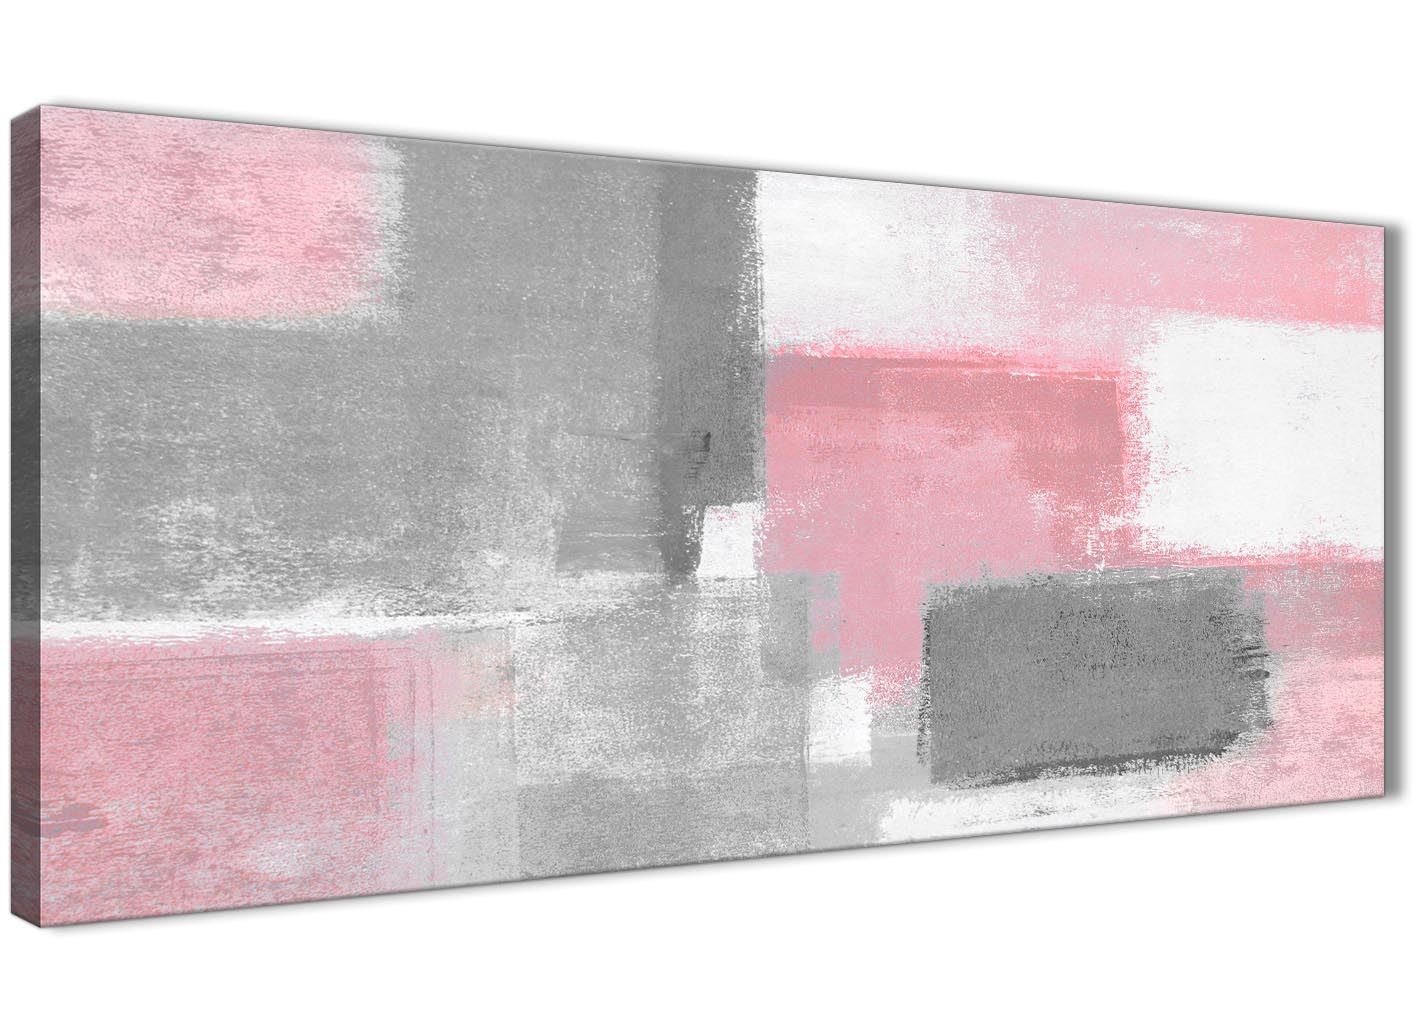 Home Decor Items Abstract 1378 120cm Blush Pink Grey Painting Living Room Canvas Accessories Home Furniture Diy Tohoku Morinagamilk Co Jp